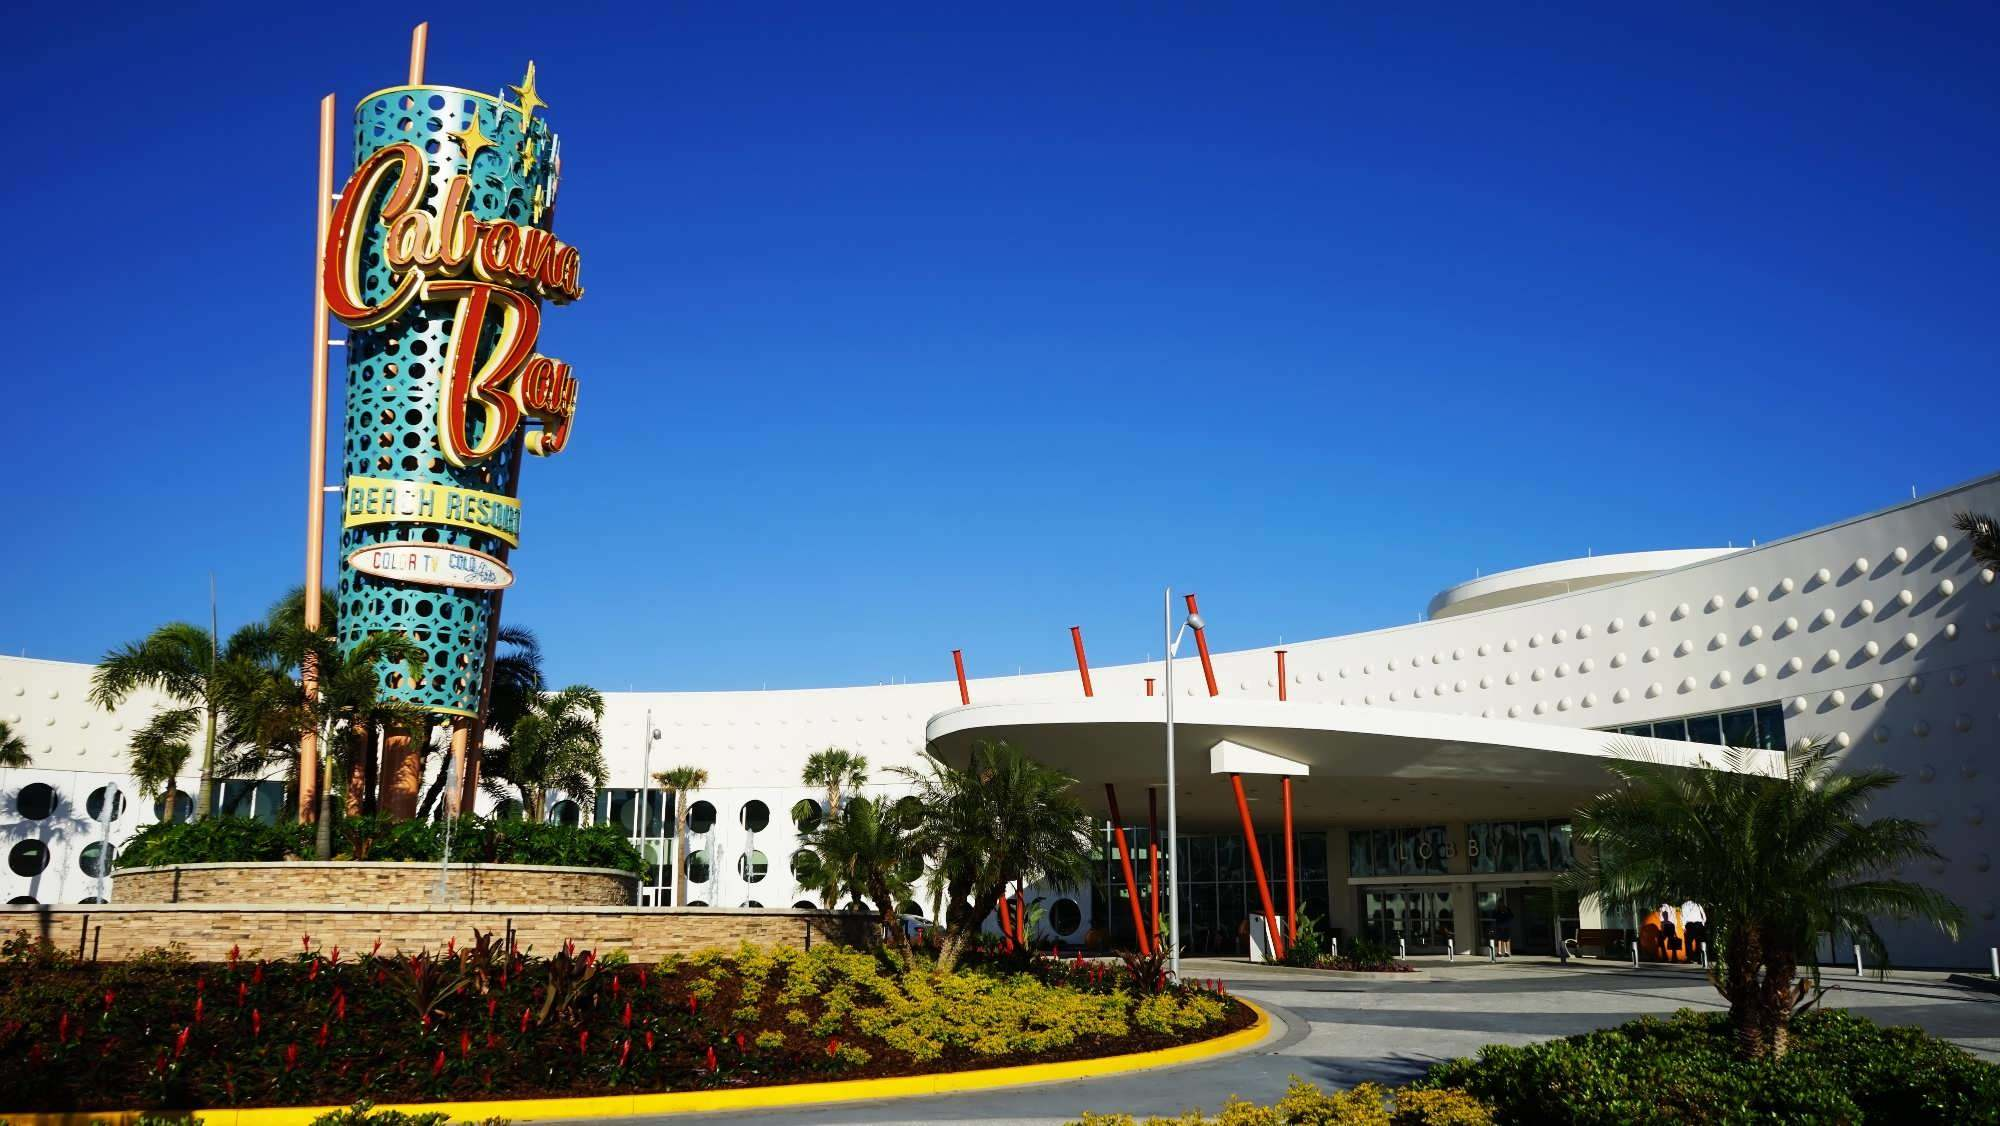 Why Cabana Bay Beach Resort is the best family resort in Orlando